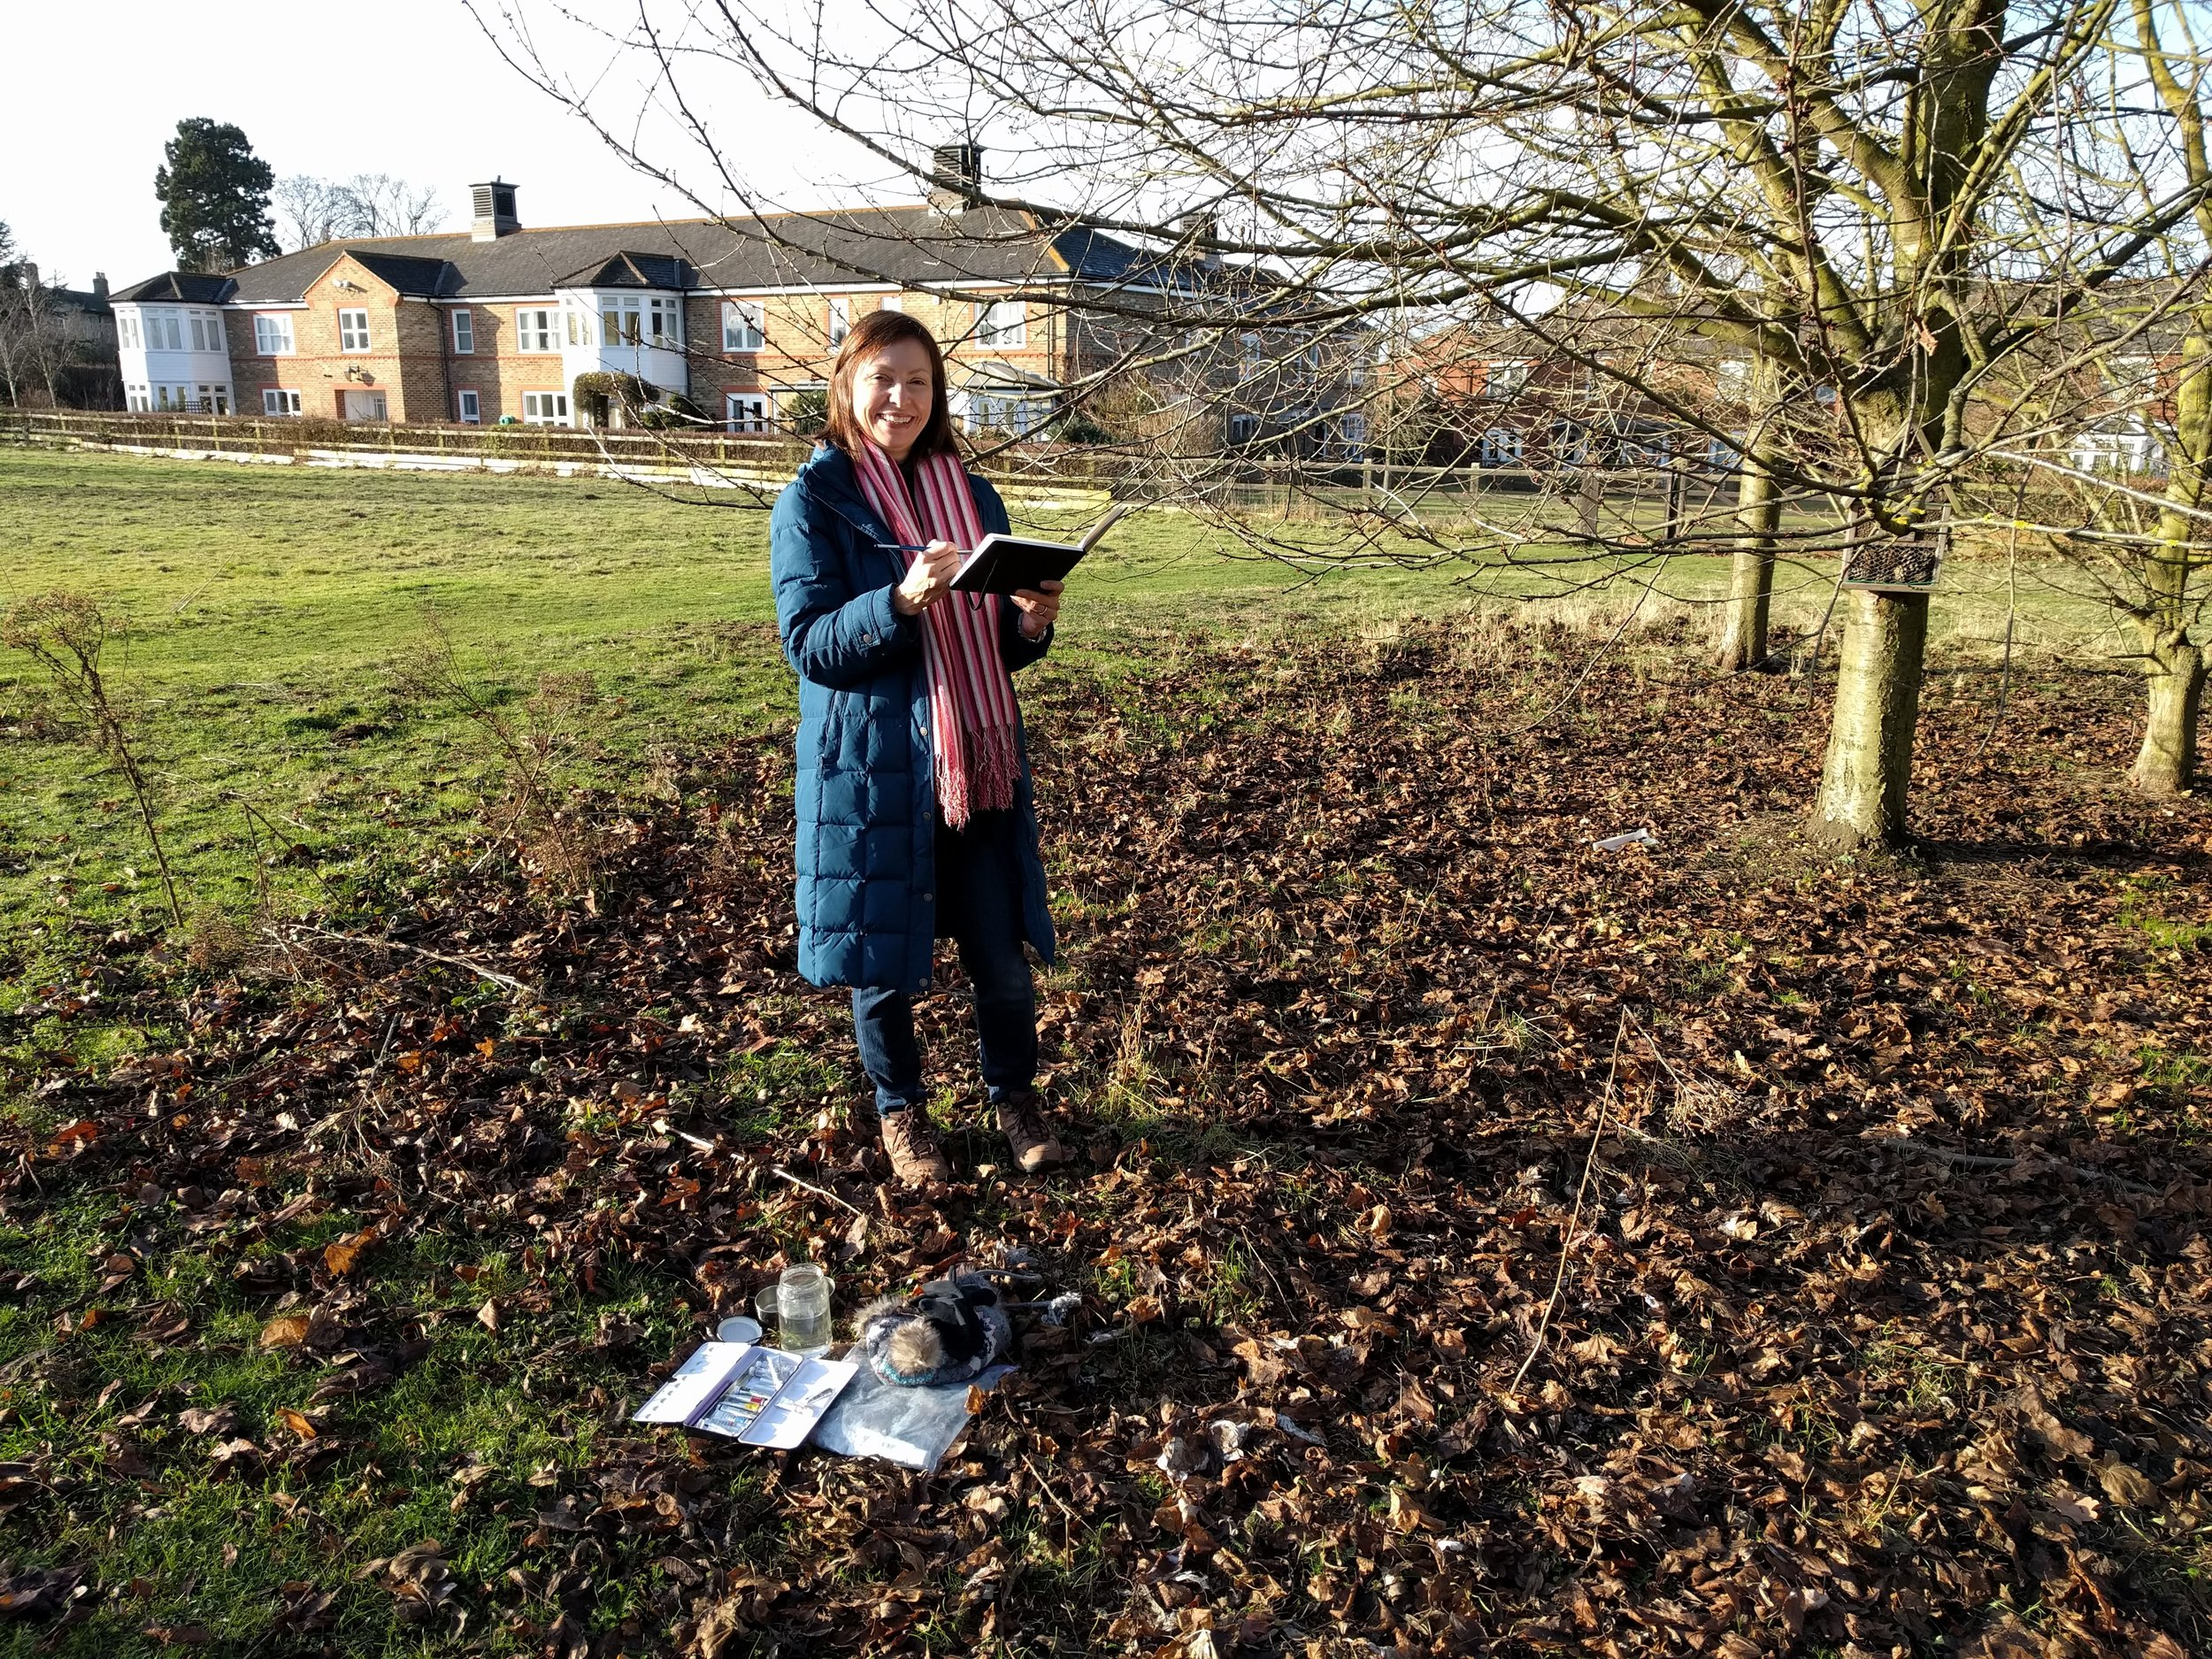 Artist miniaturist Amanda Em painting plein air in Girton, Cambridgeshire, for My Small Paintings